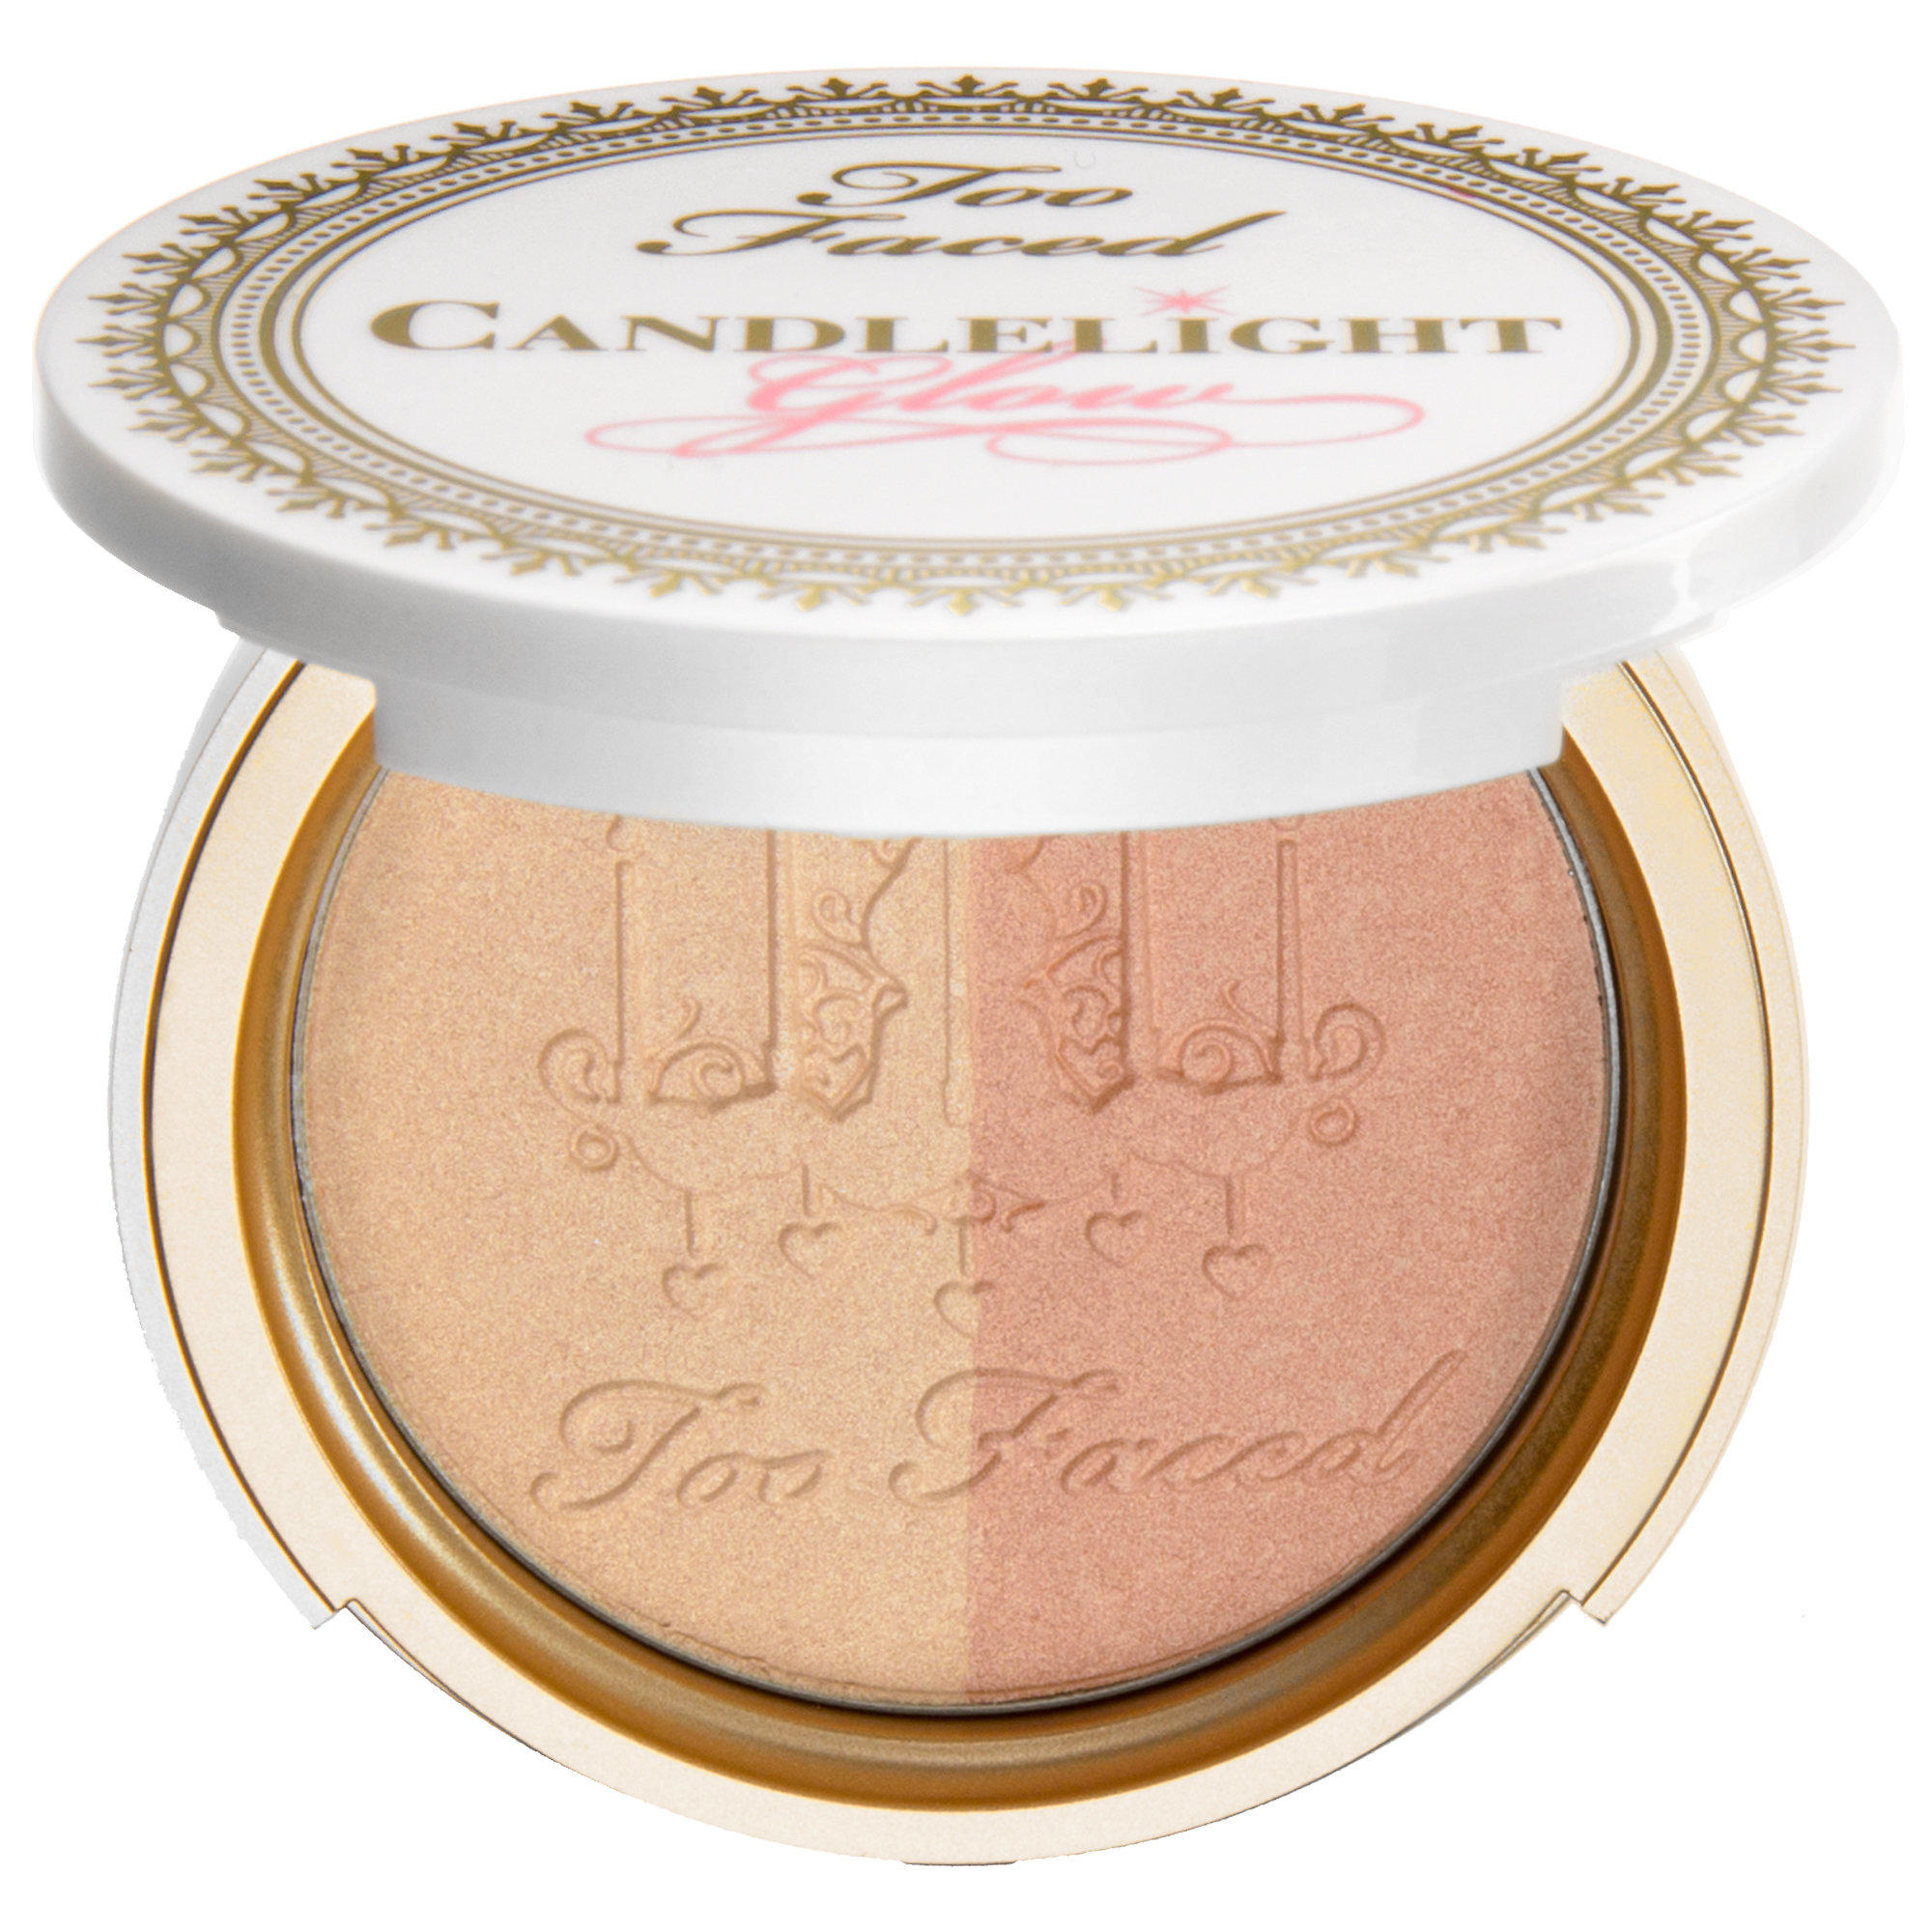 Too Faced Candlelight Glow Highlighting Powder Duo Warm Glow